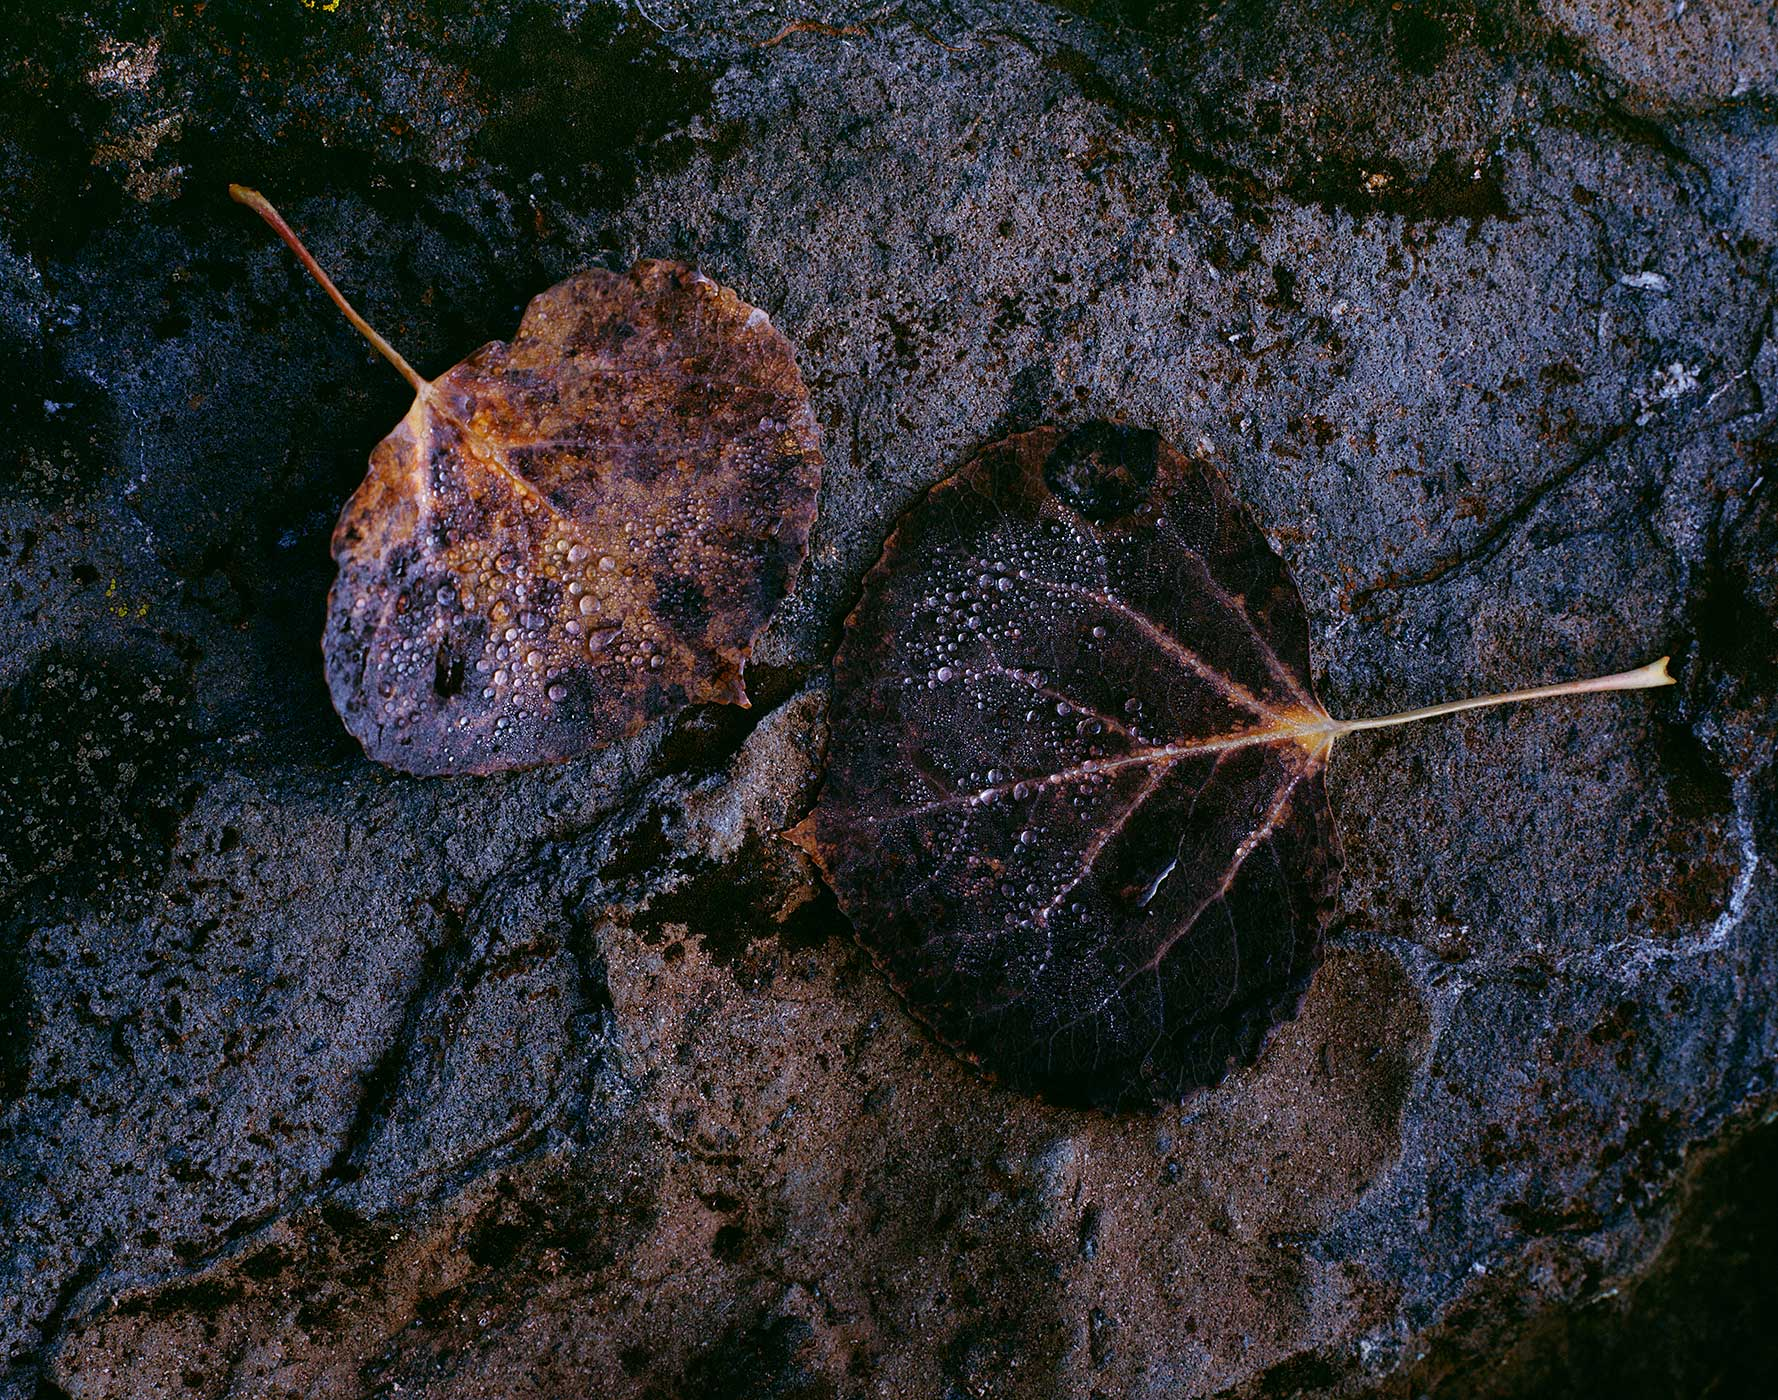 306 Two Aspen Leaves, Dew, Coconino National Forest, Arizona